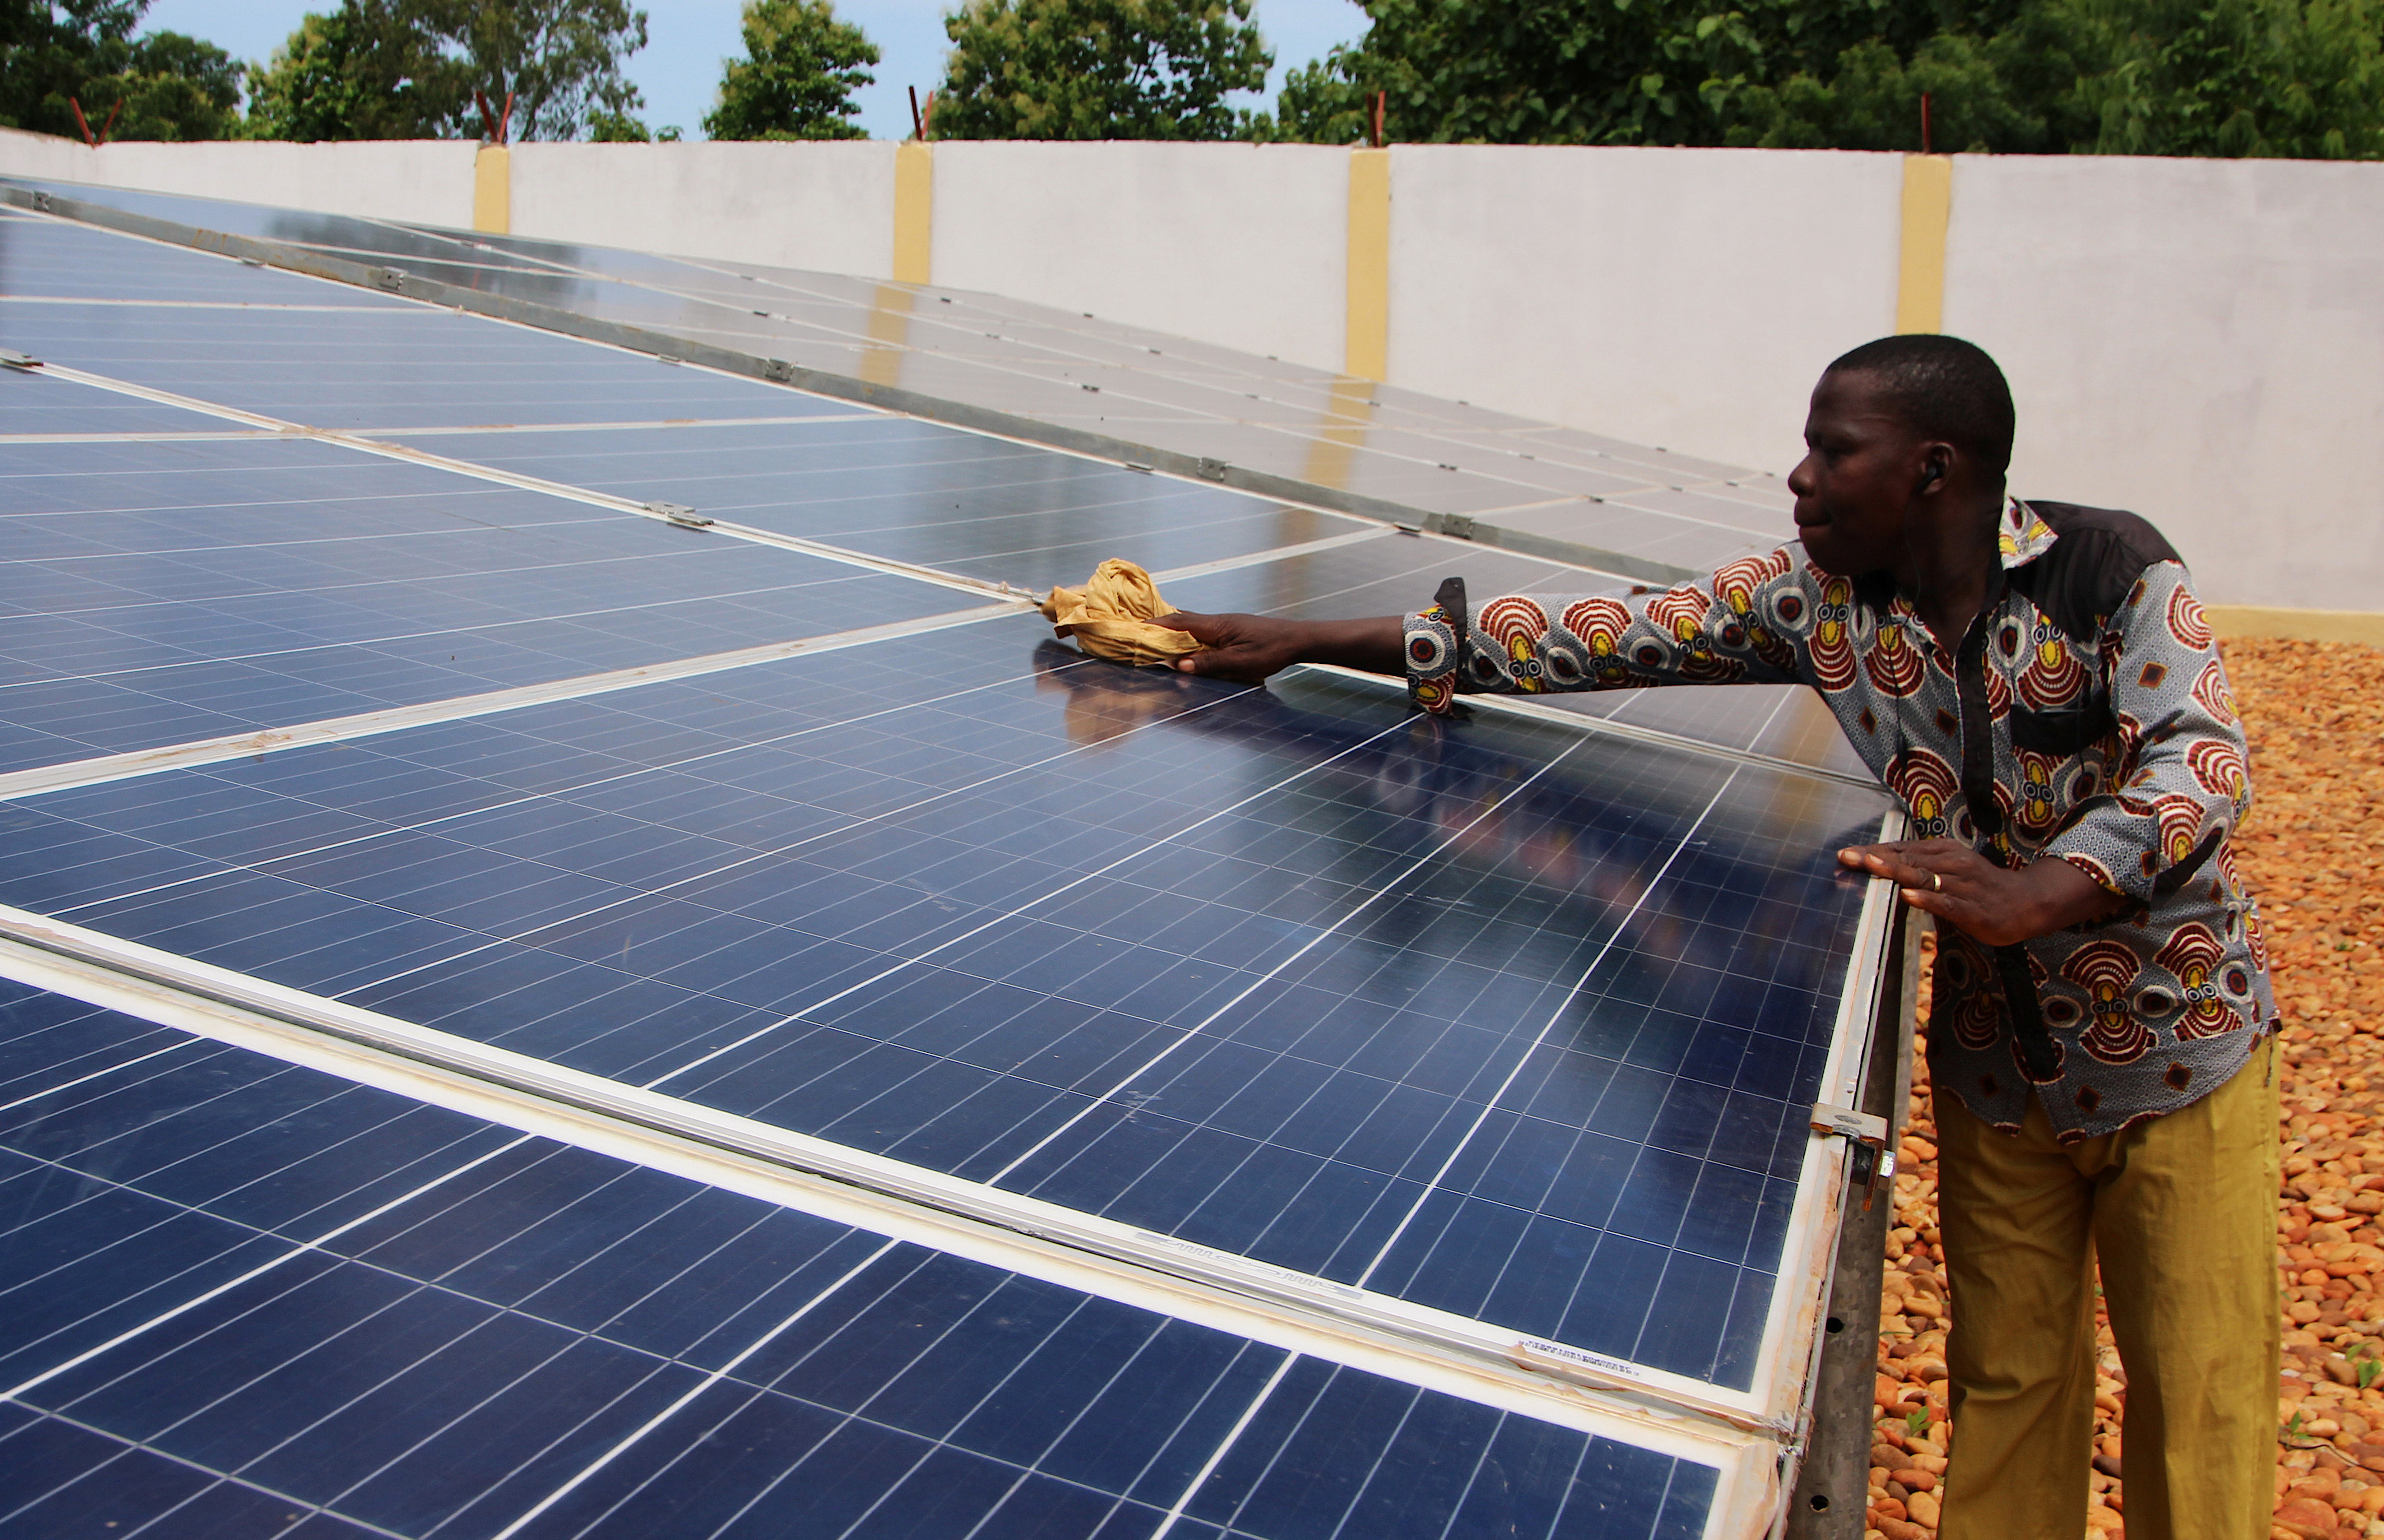 A technician cleans solar panels, part of the BBOXX and EDF solar energy system used to provide electricity to Sikpe Afidegnon village, Togo May 16, 2019. Picture taken May 16, 2019. REUTERS/Noel Kokou Tadegnon - RC123FE24560